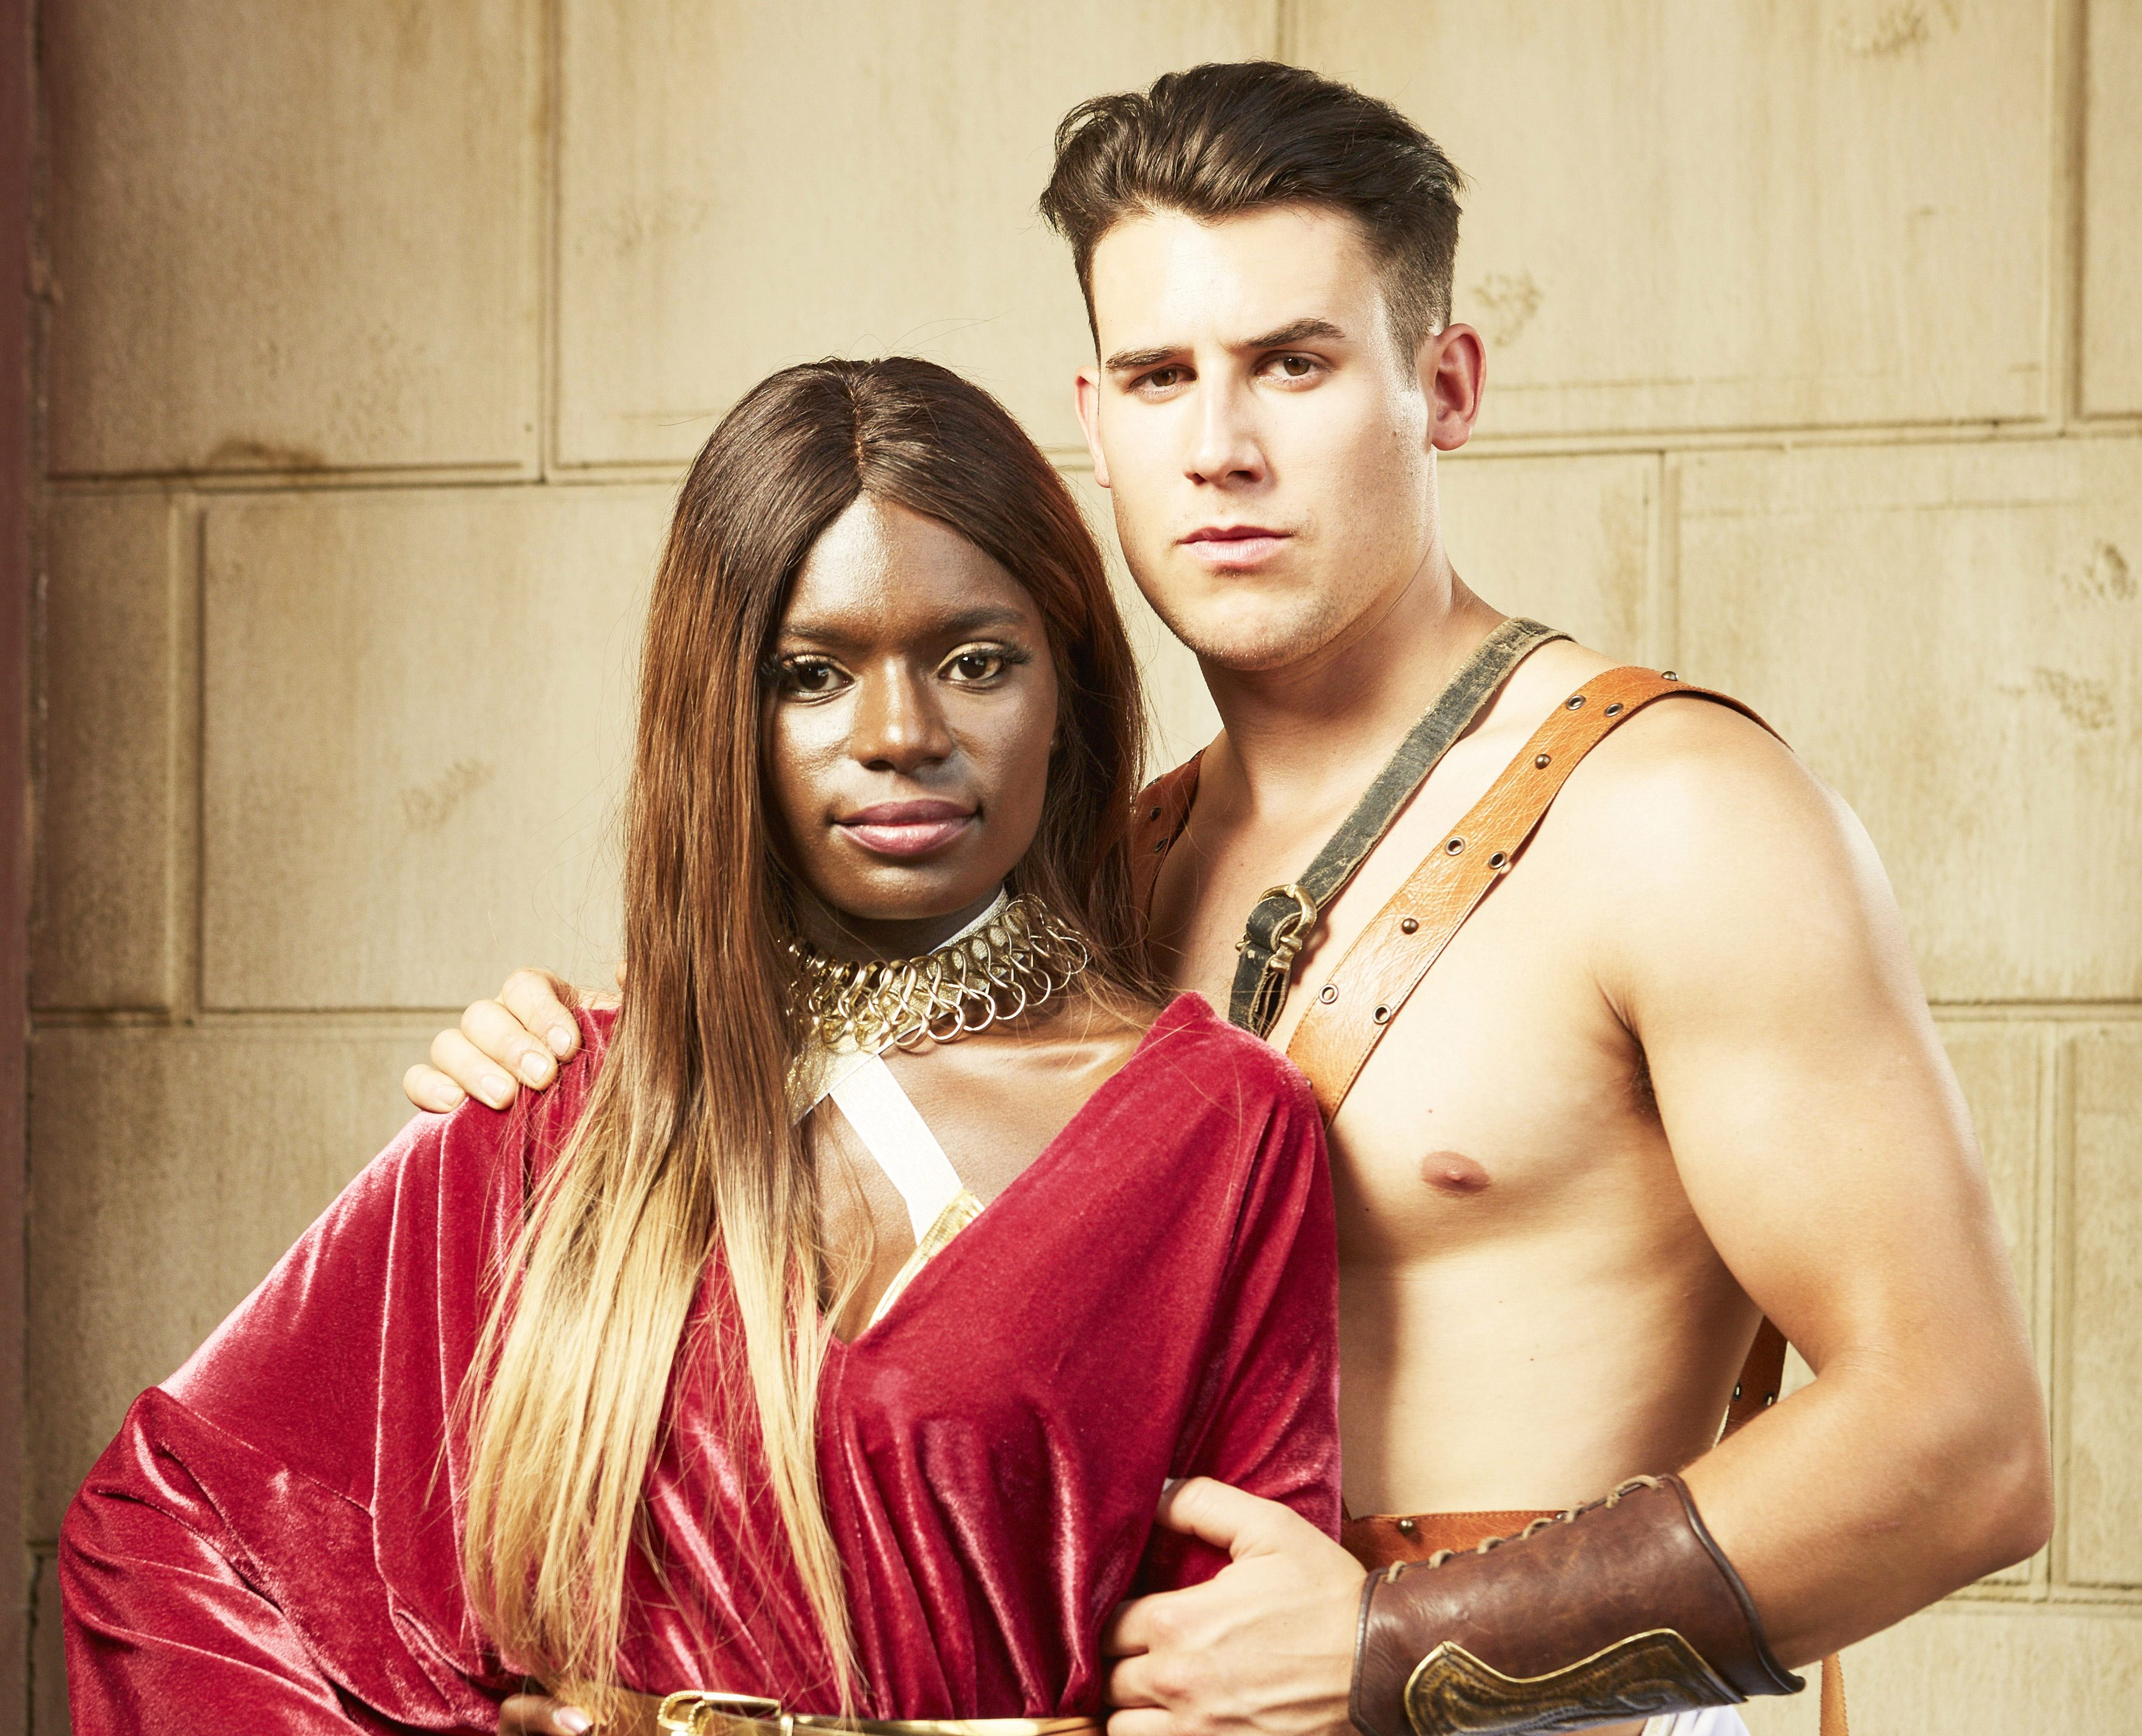 Meet the Bromans couples: Modina has been with Kai for three years but her eye is wandering